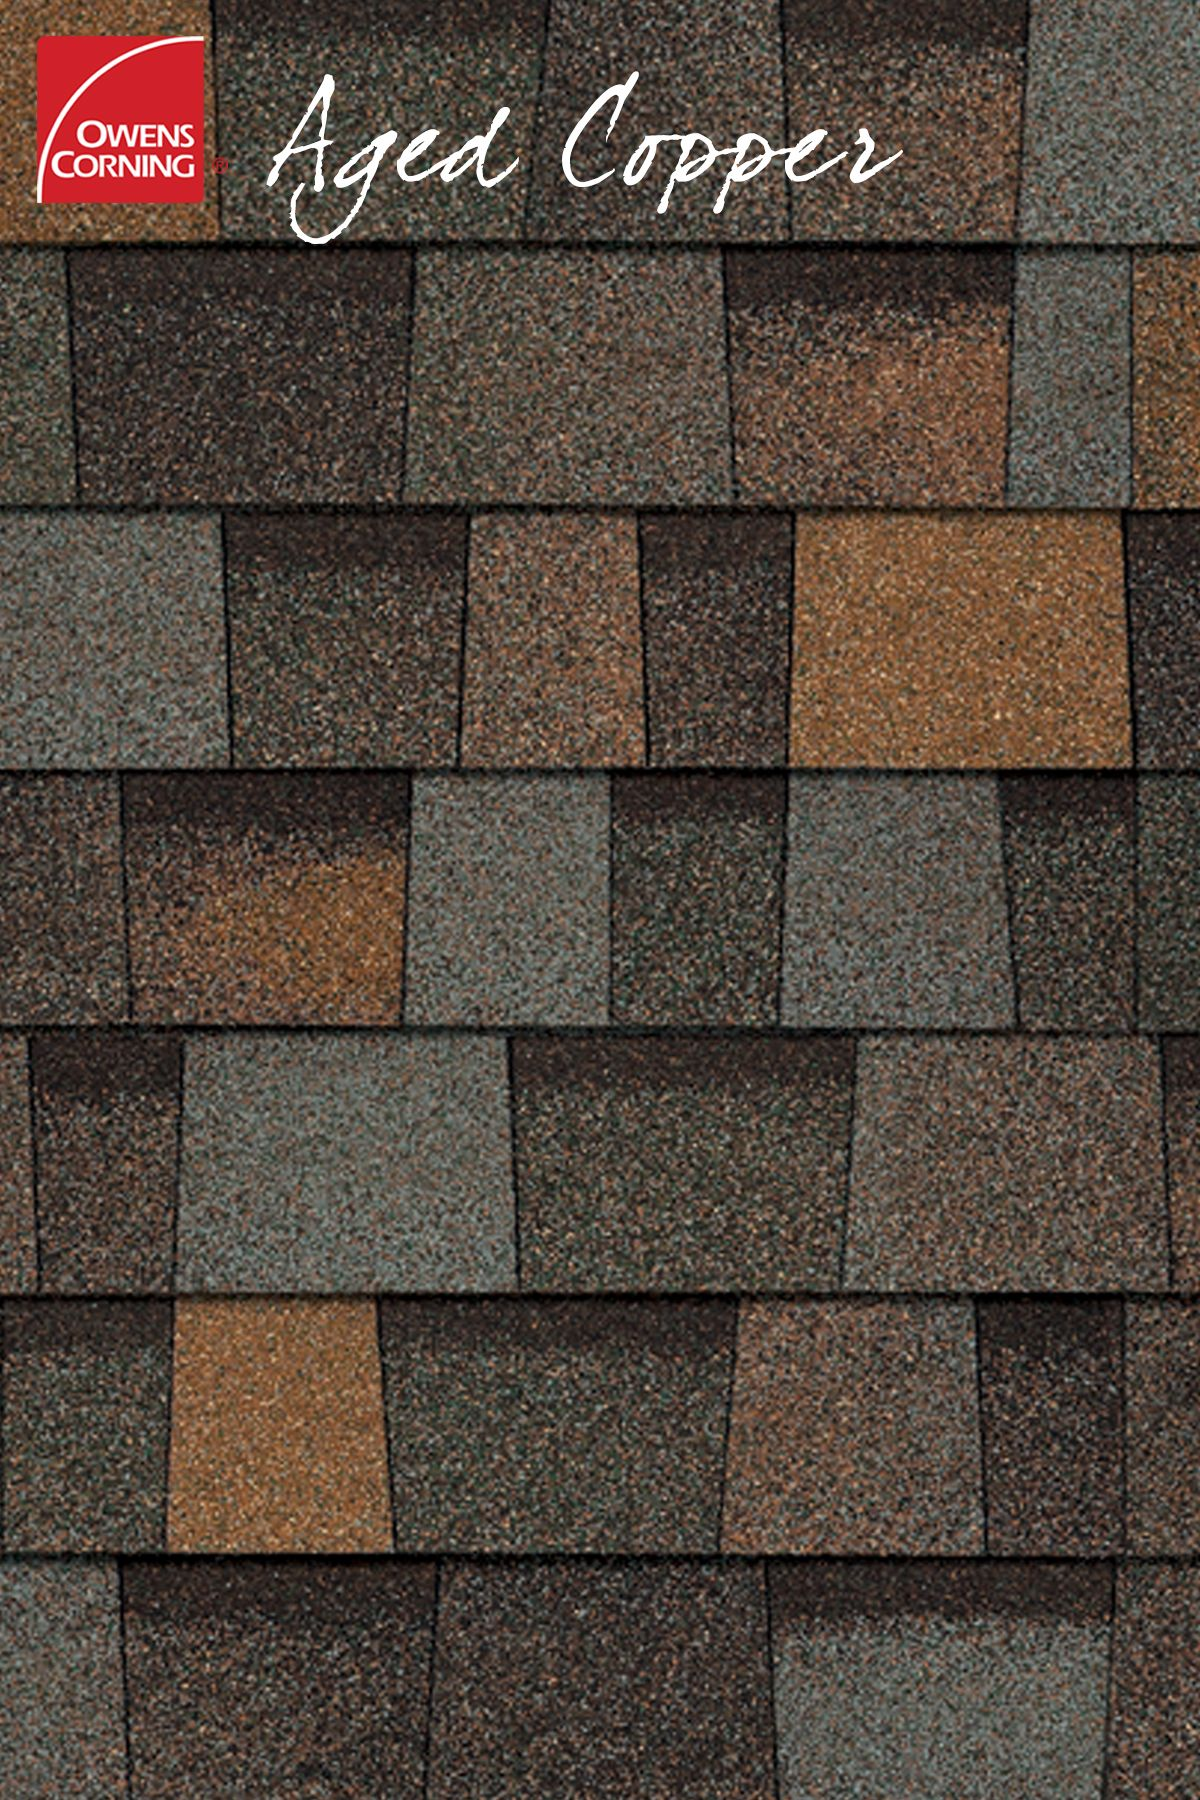 The Art Of Picking The Right Roofing Color Is Complex But With Sedona Canyon Choosing Your Roof Color Has Never Been Shingle Colors Roof Colors Solar Panels